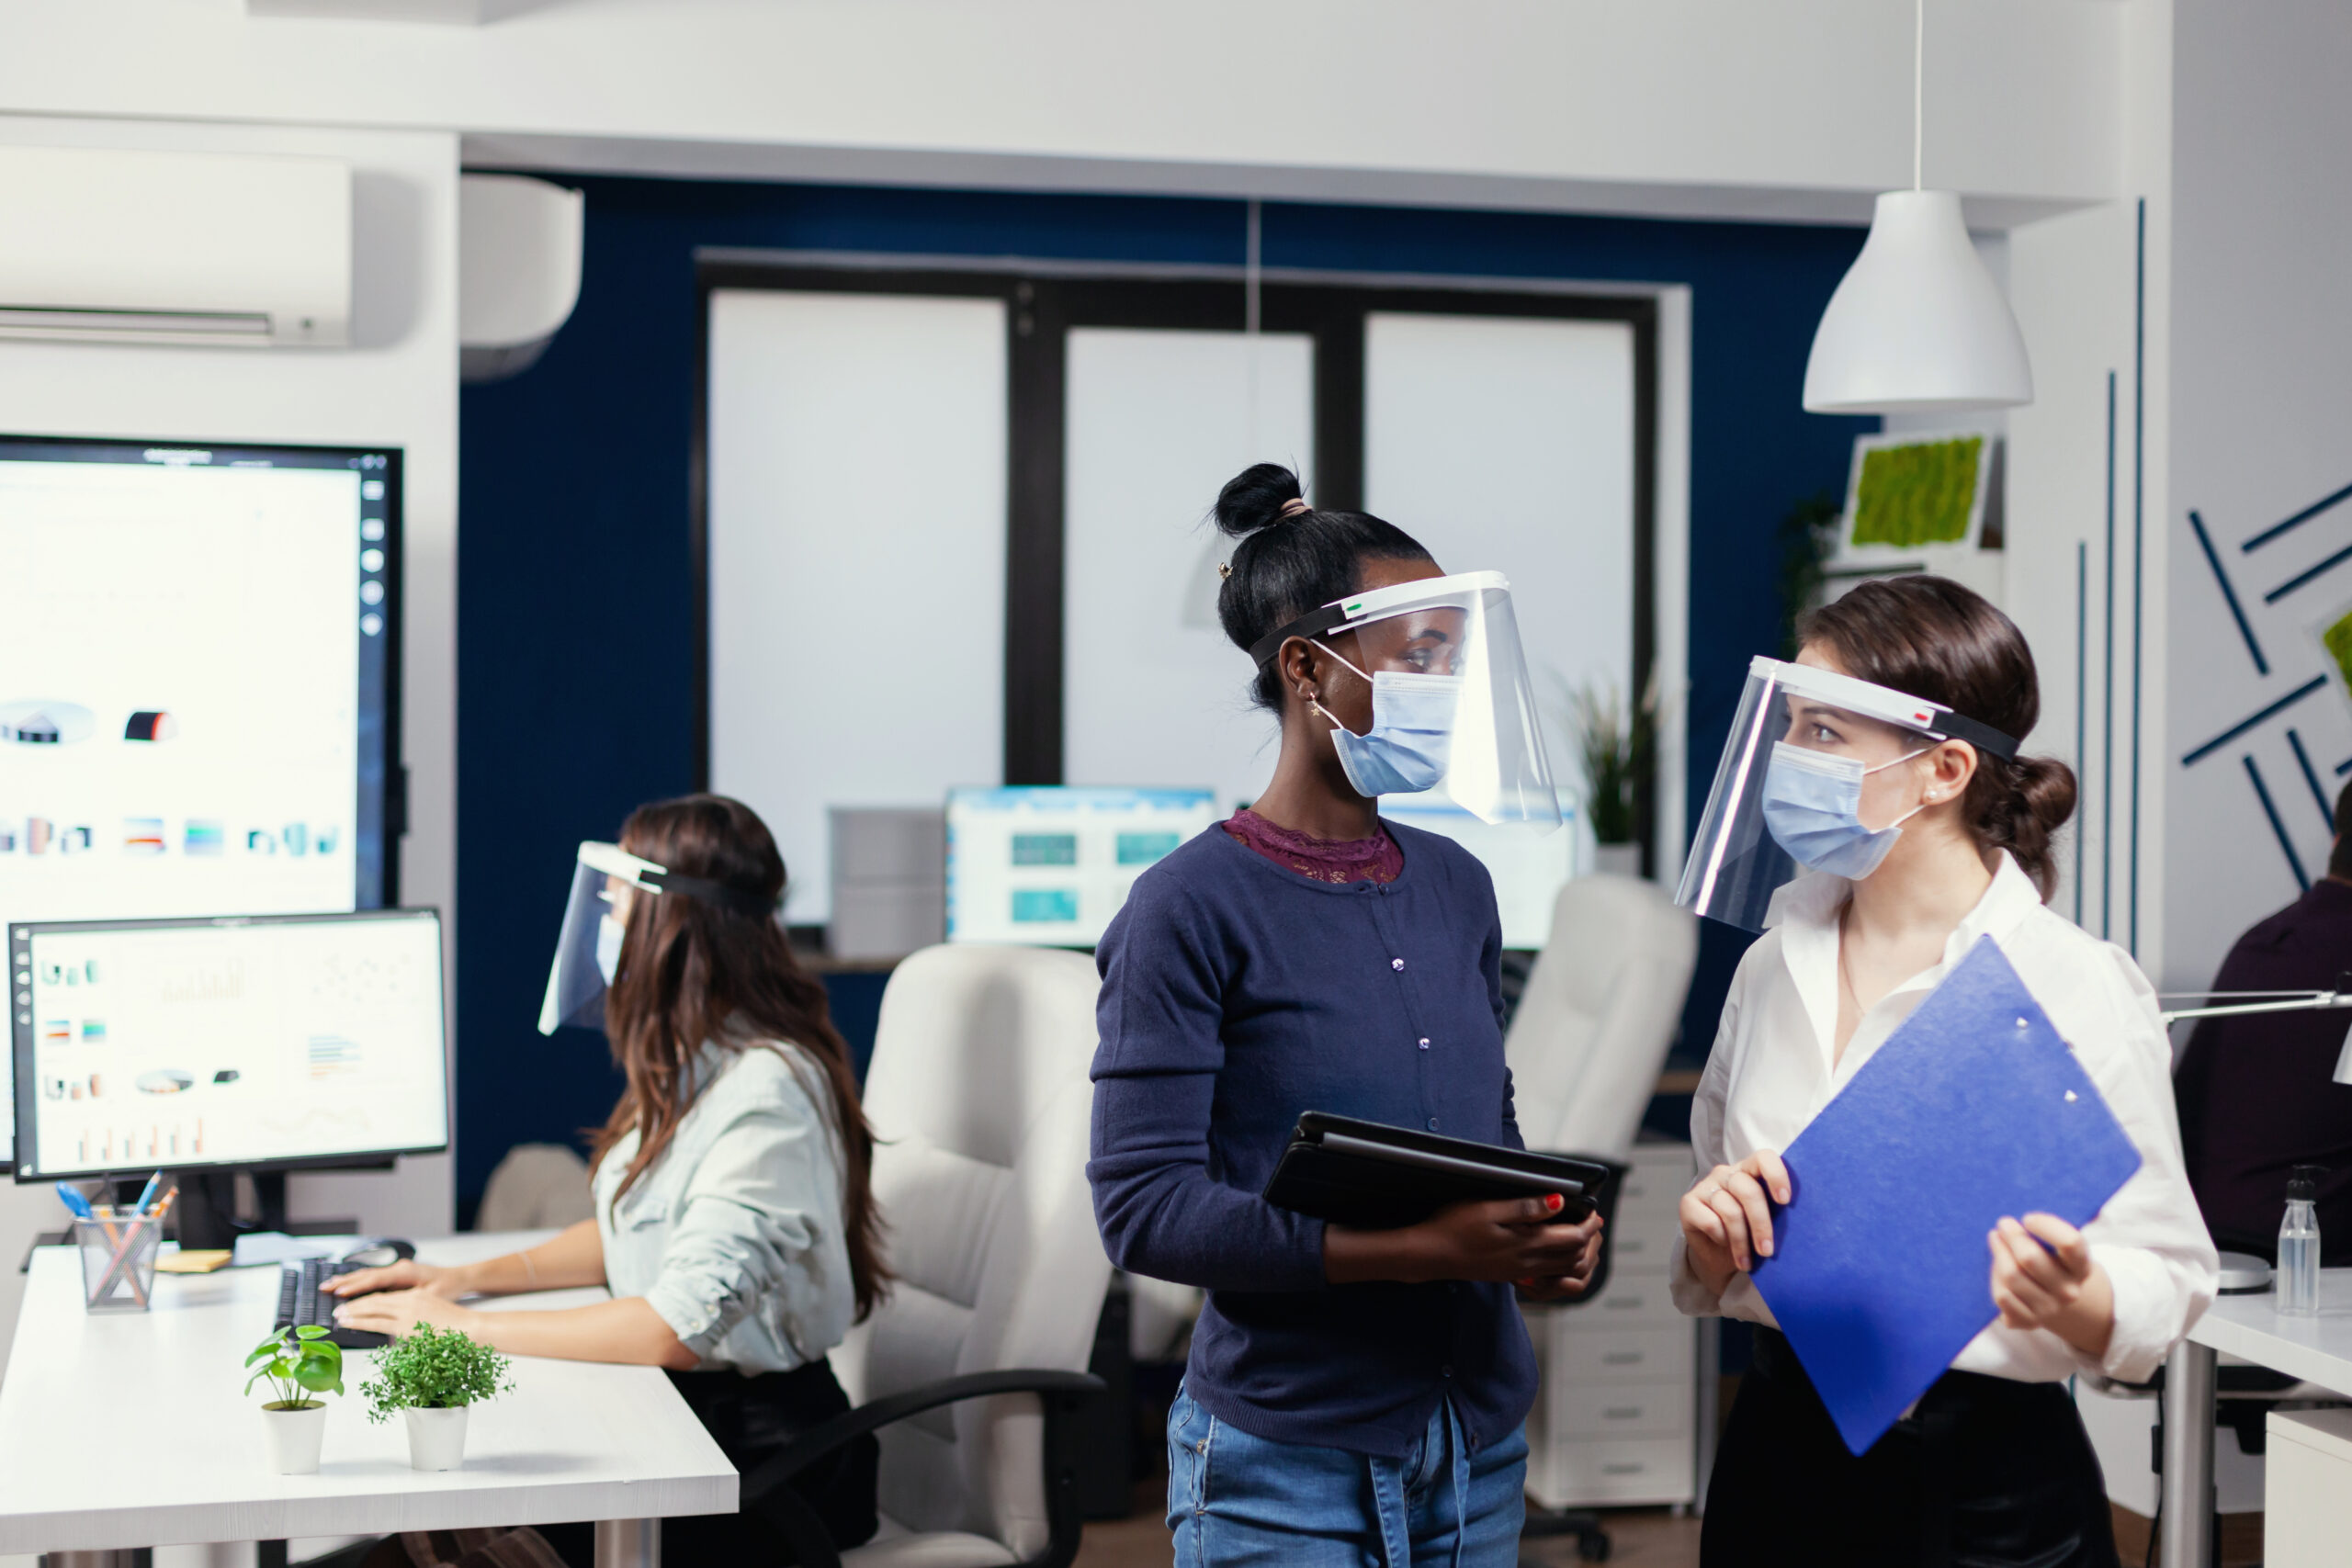 African and caucasian coworkers discussing statistics in workplace wearing face mask. Multiethnic business team working respecting social distance during global pandemic with coronavirus.